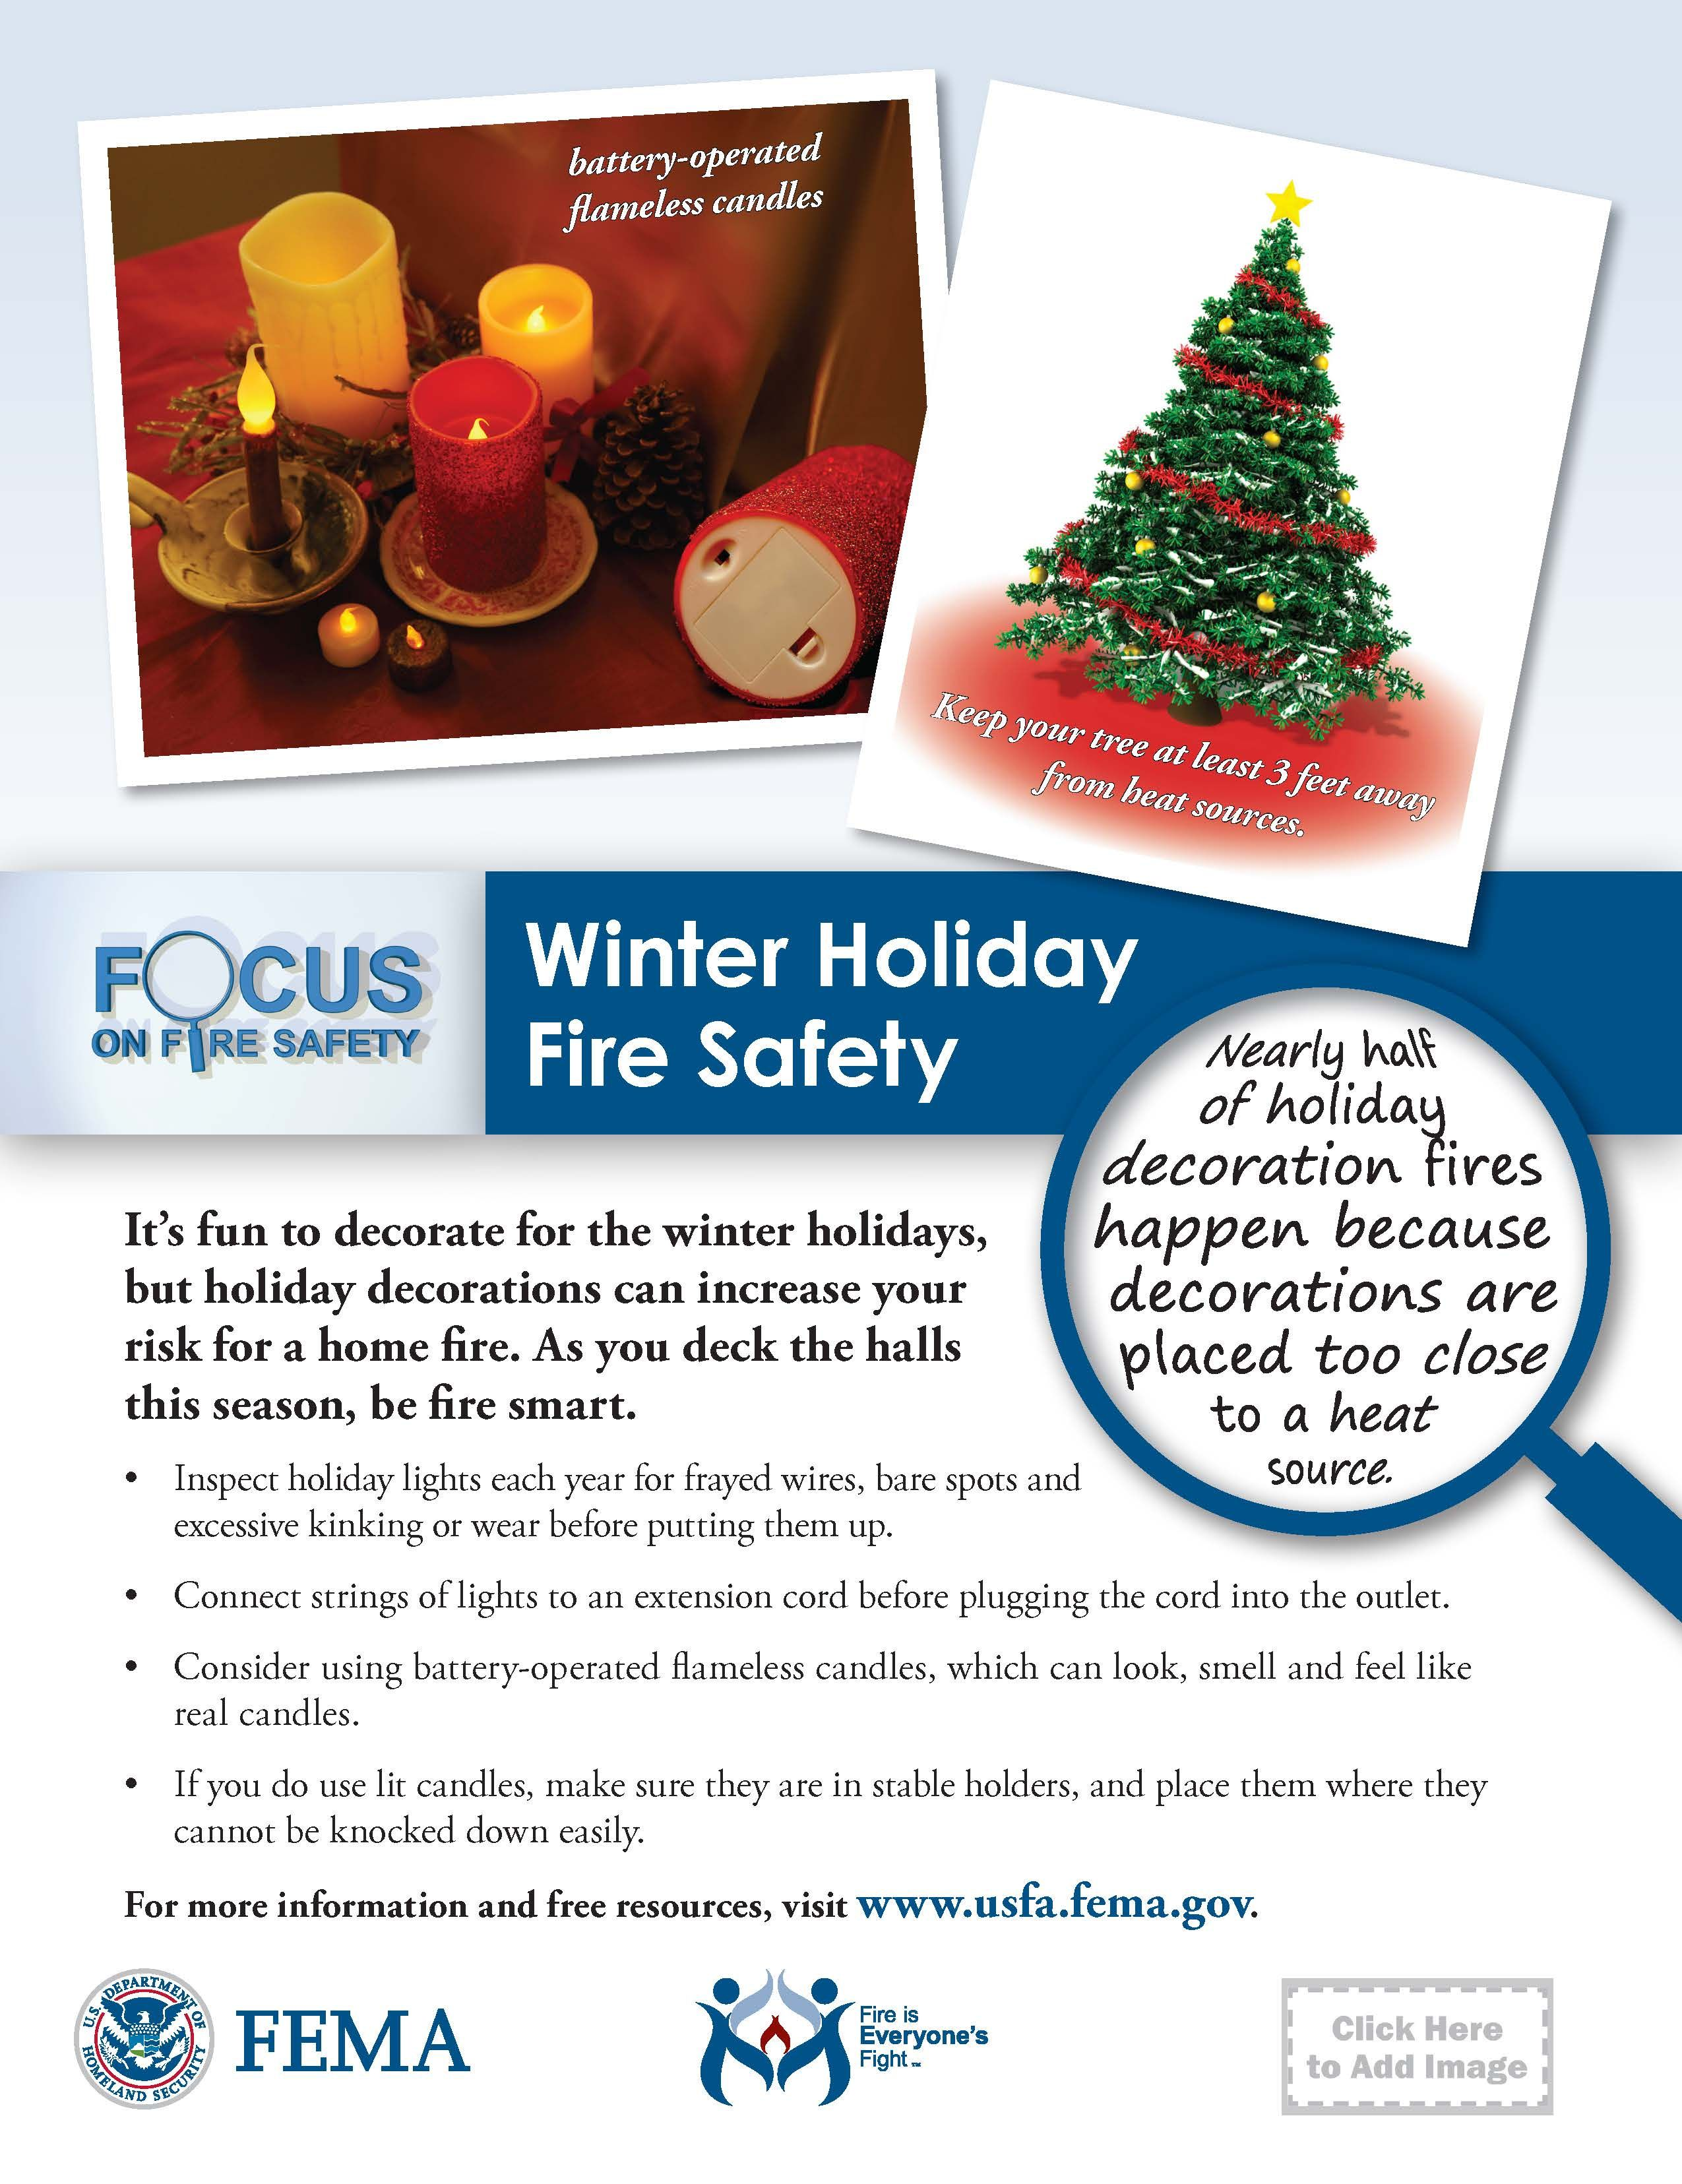 winter holiday fire safety Fire safety poster, Fire